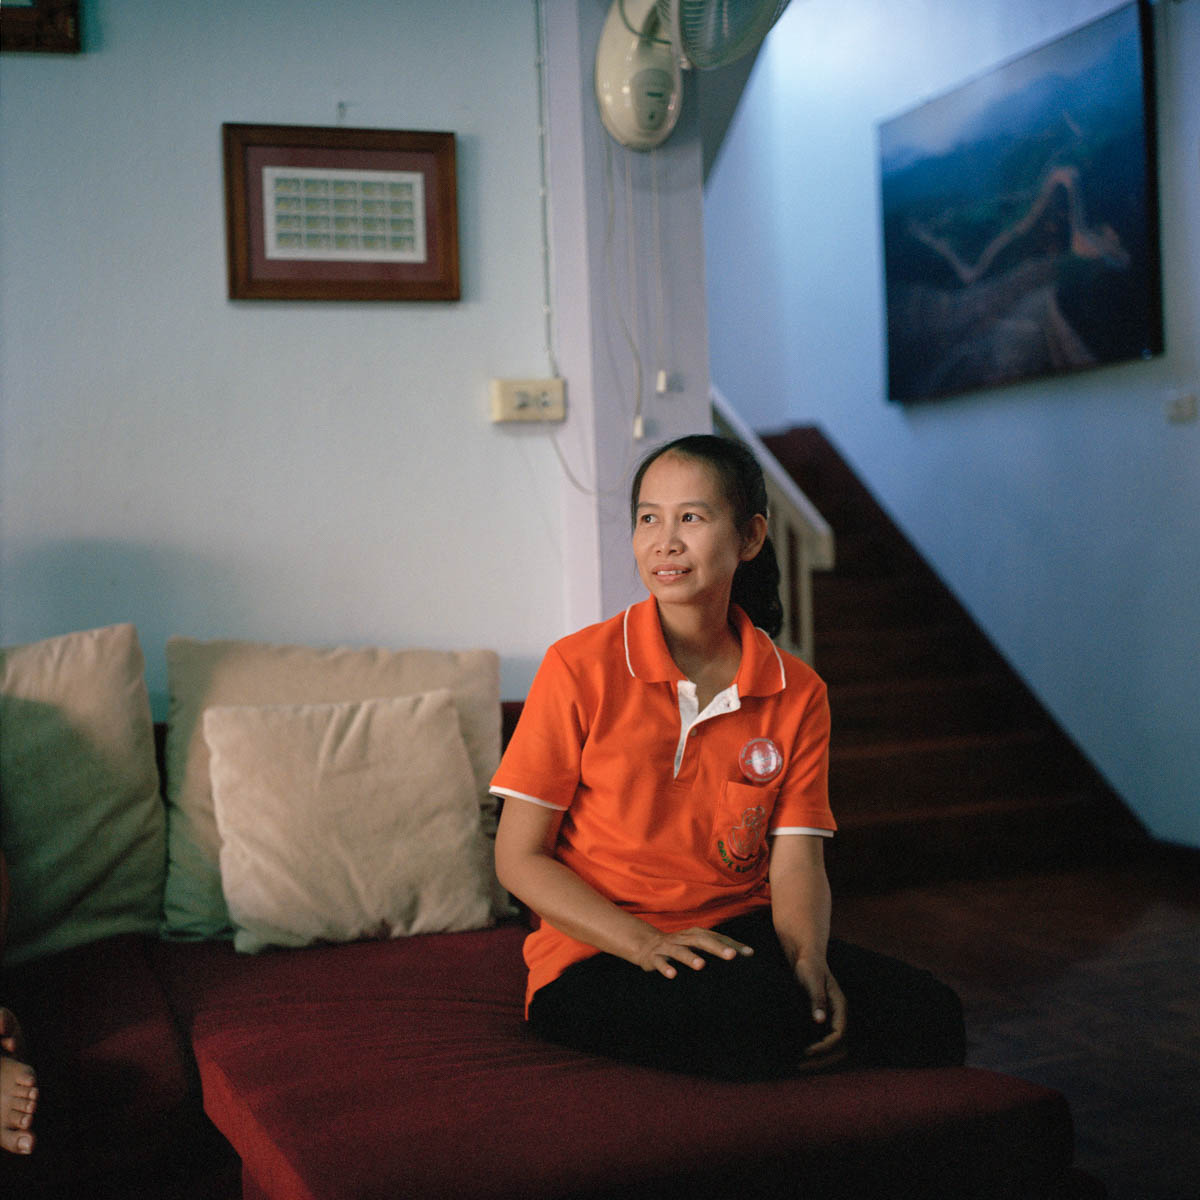 Portrait of Chang Ya - Ten years ago Martin Woodtli, a Swiss citizen, founded in Chiang Mai, Northern Thailand, a center for people with Alzheimer's and senile dementia: The Baan Kamlangchay. Today the center hosts a dozen European residents. —